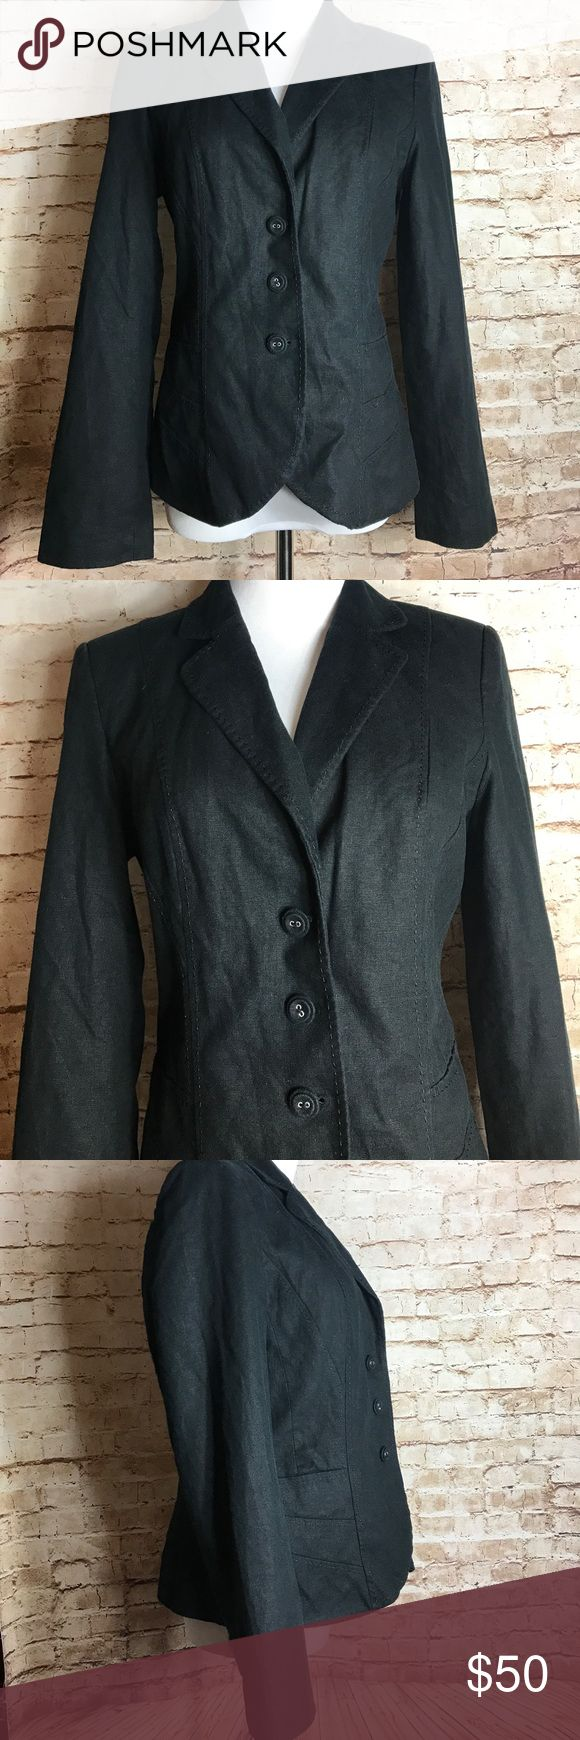 "✨MARKS & SPENCER✨ Marks and spencer womens blazer black linen button jacket size 12  Good Pre-owned condition No rips, tears, marks or stains Please see pictures for details   Laying flat  Armpit to armpit 19""  Full length 26"" Marks & Spencer Jackets & Coats Blazers"